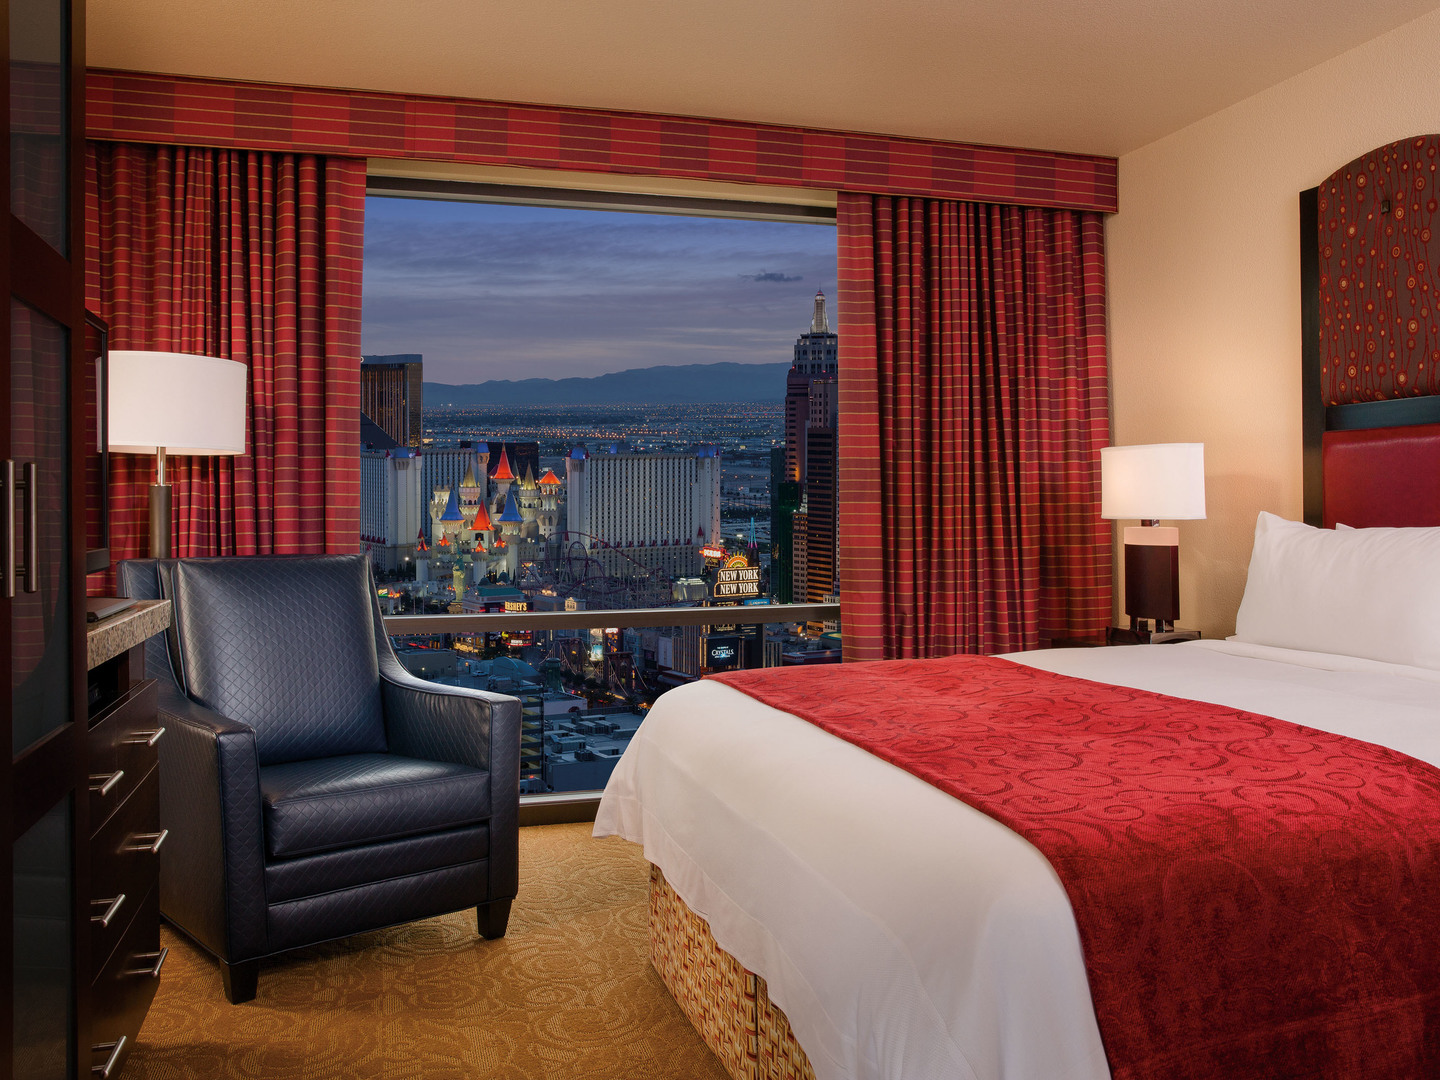 Marriott's Grand Chateau<span class='trademark'>®</span> 1-Bedroom/Bedroom (Tower 3). Marriott's Grand Chateau<span class='trademark'>®</span> is located in Las Vegas, Nevada United States.